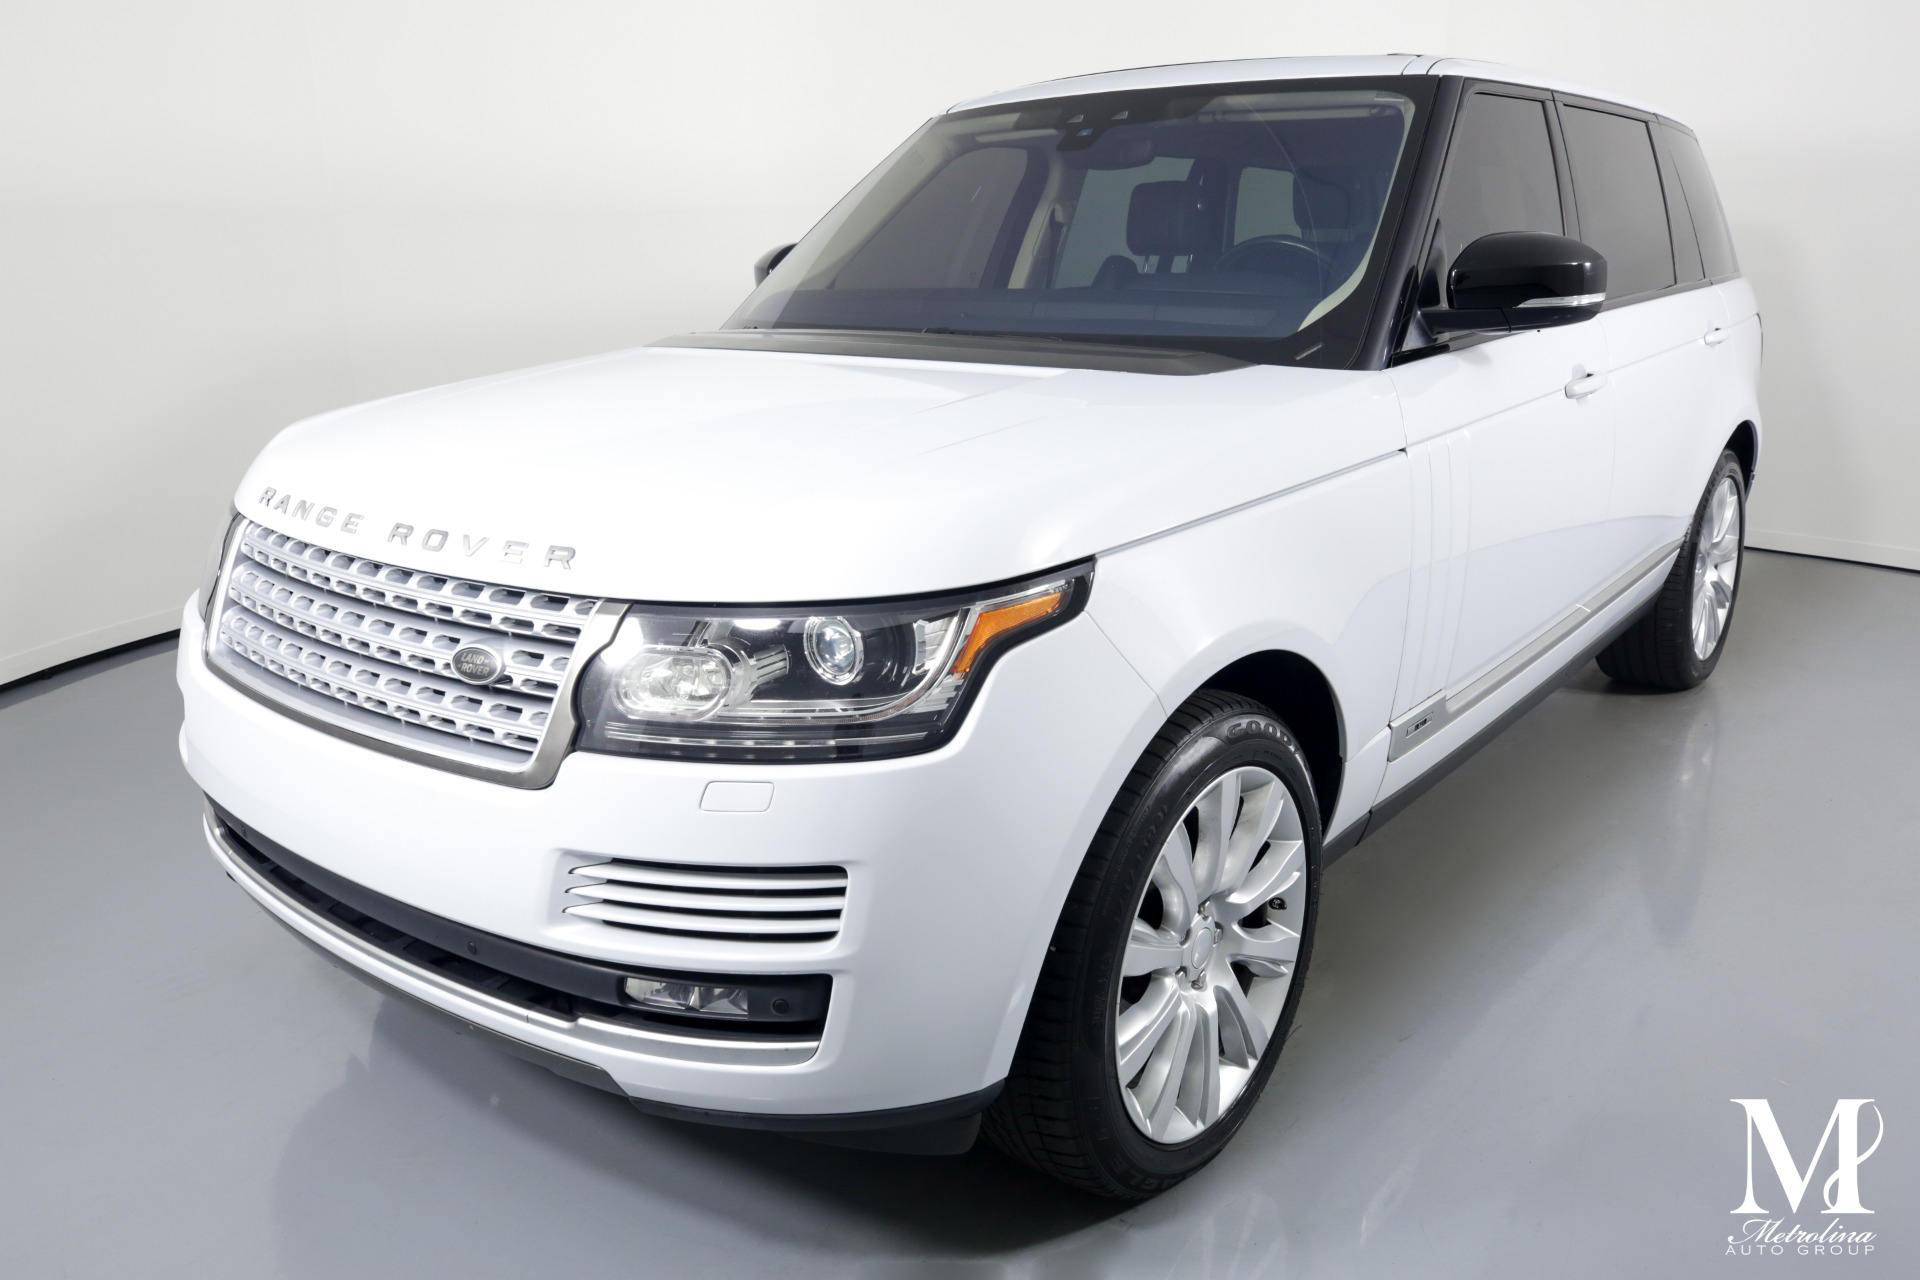 Used 2017 Land Rover Range Rover Supercharged LWB for sale $69,996 at Metrolina Auto Group in Charlotte NC 28217 - 4